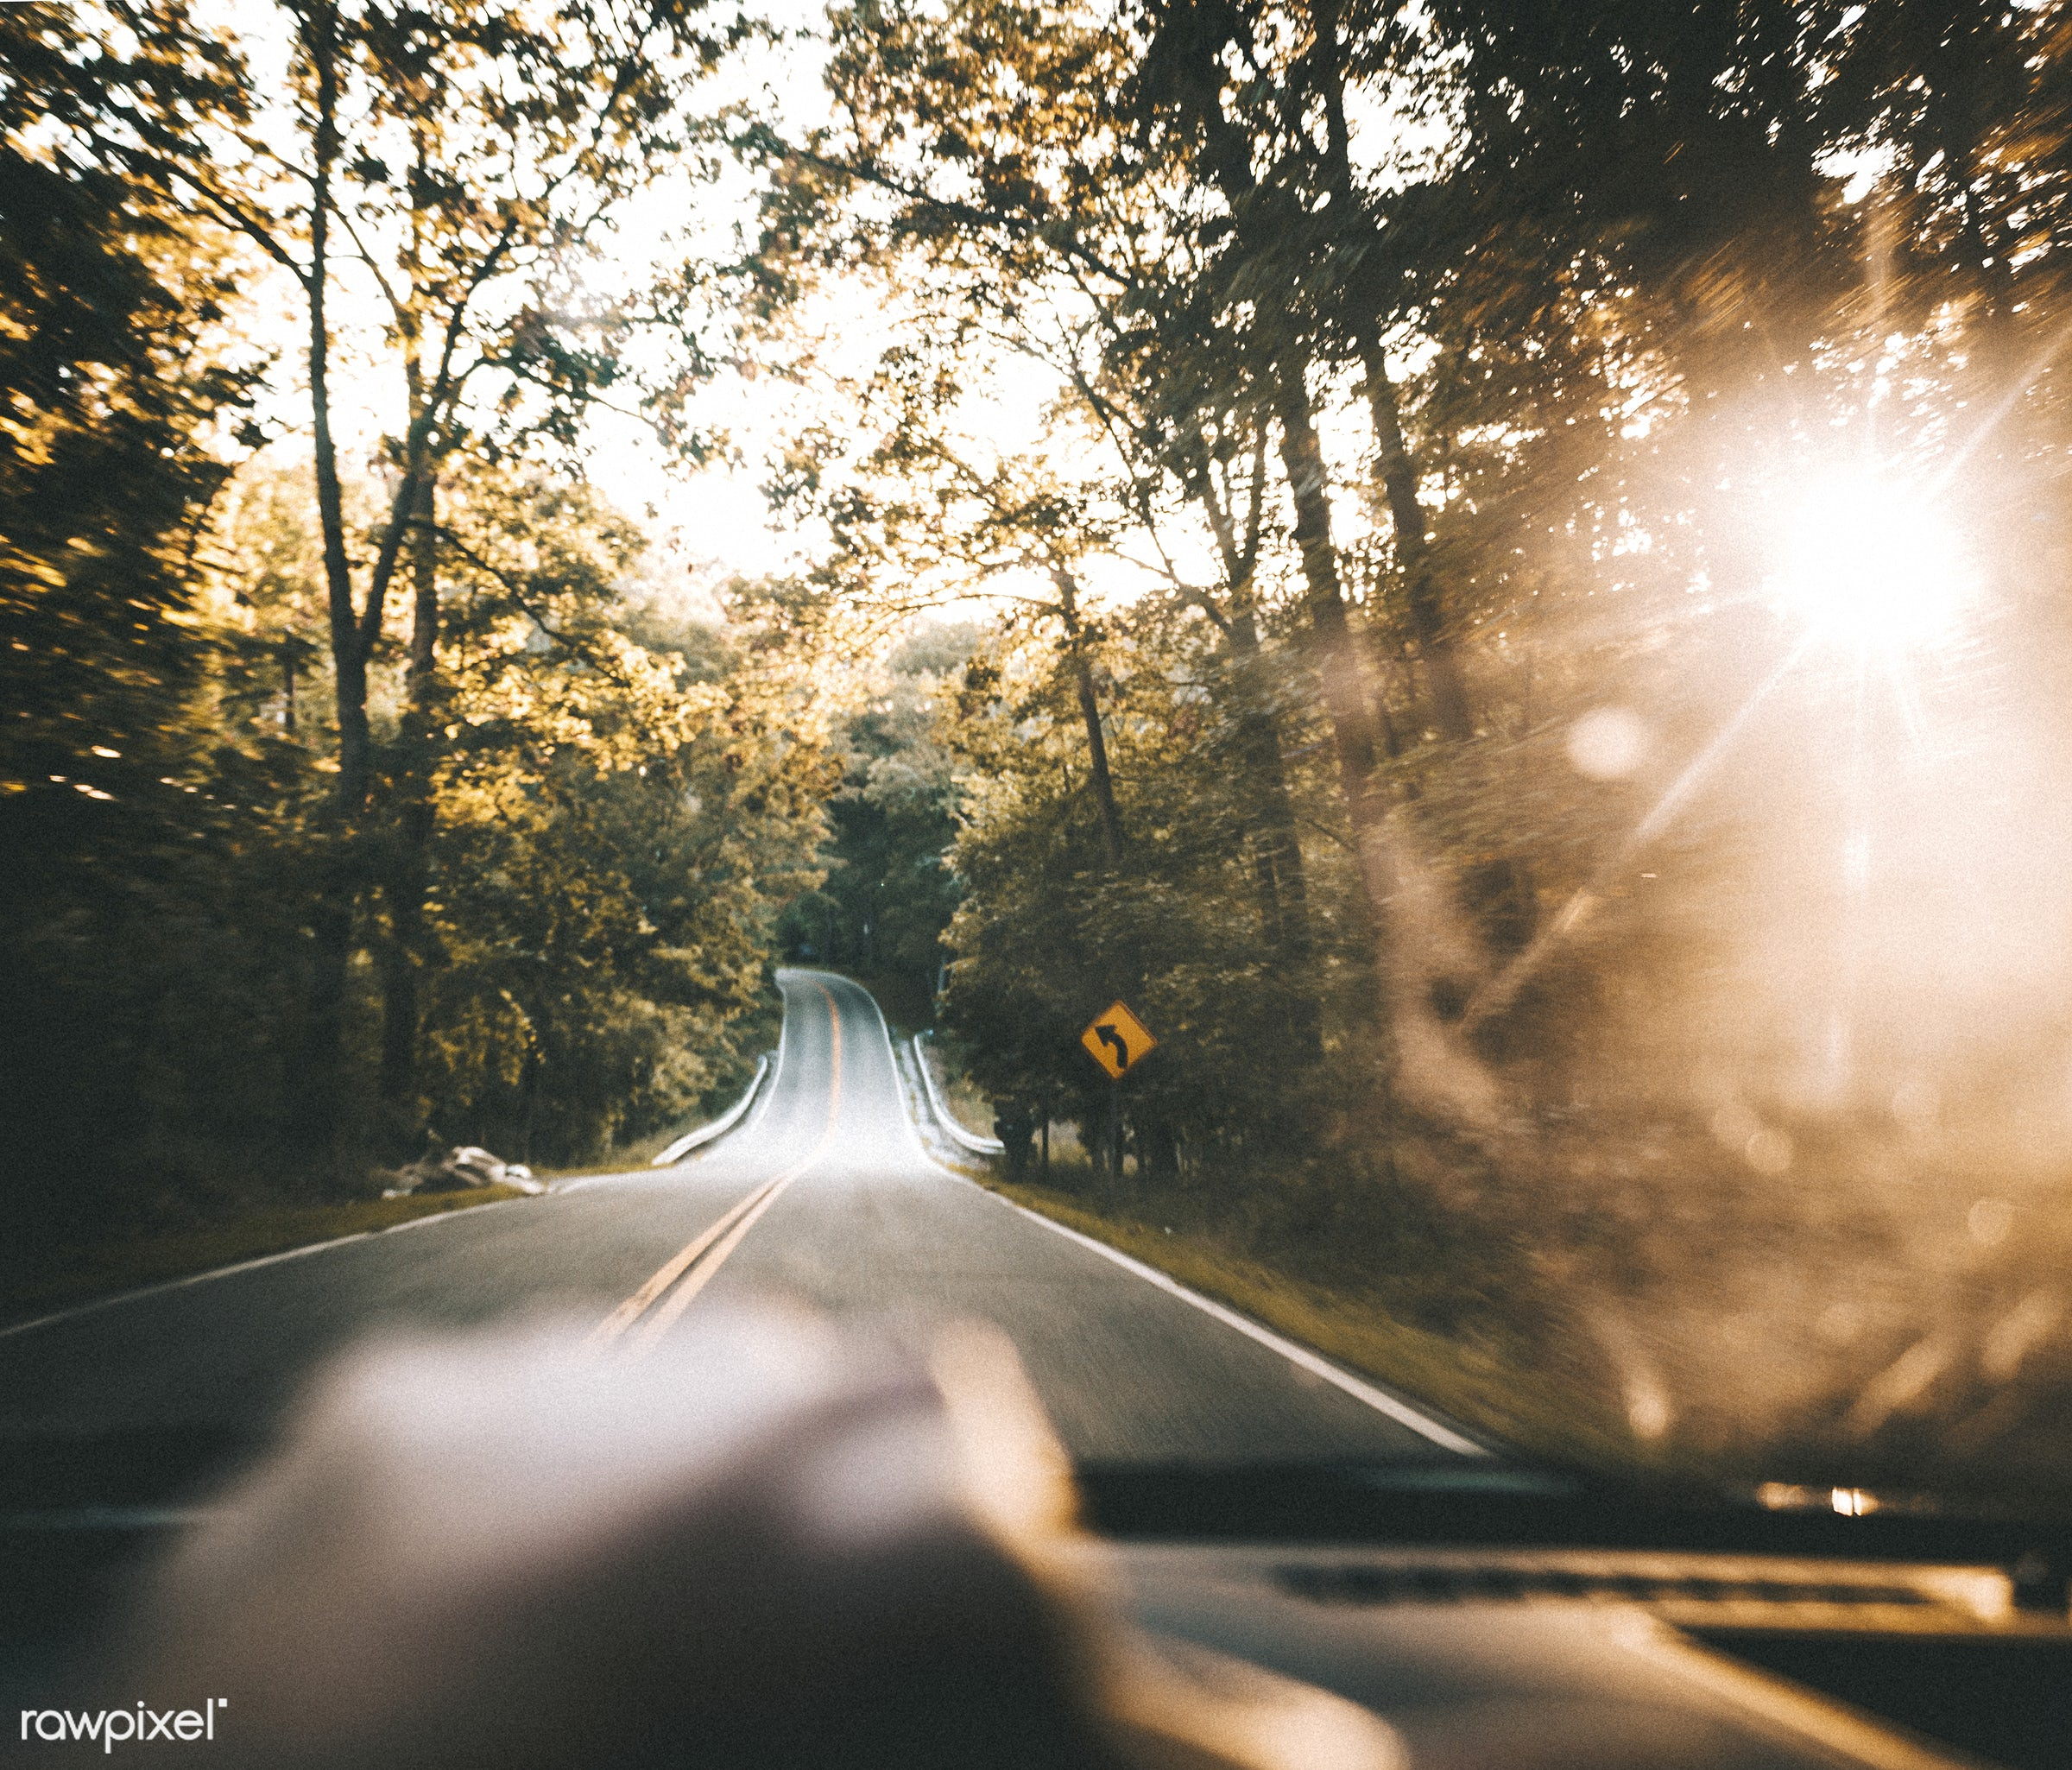 Road trip along the Cuyahoga Valley National Park in Ohio, USA - america, car, curve, cuyahoga valley national park, driving...